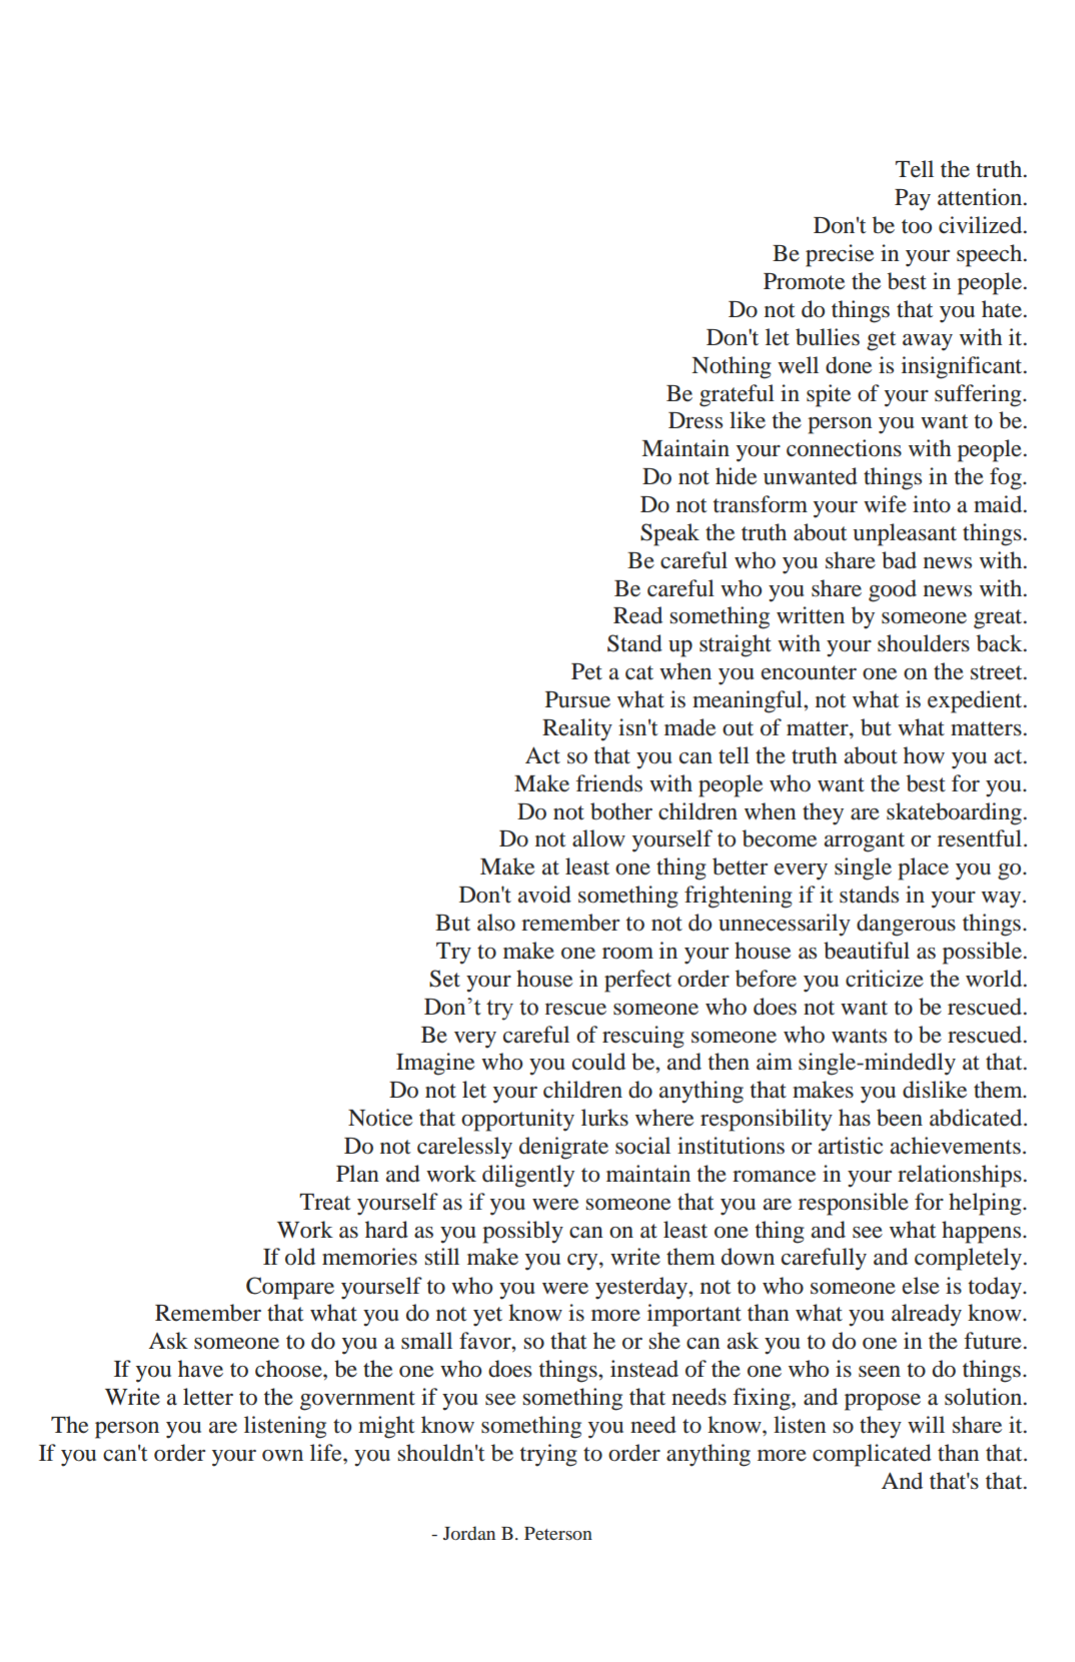 A Collection Of Jordan Peterson Quotes I Put Together Some Quotes We Re Edited To Fit The Aesthetic This Will Be Framed And Hung In My House For Continuous So Life Rules